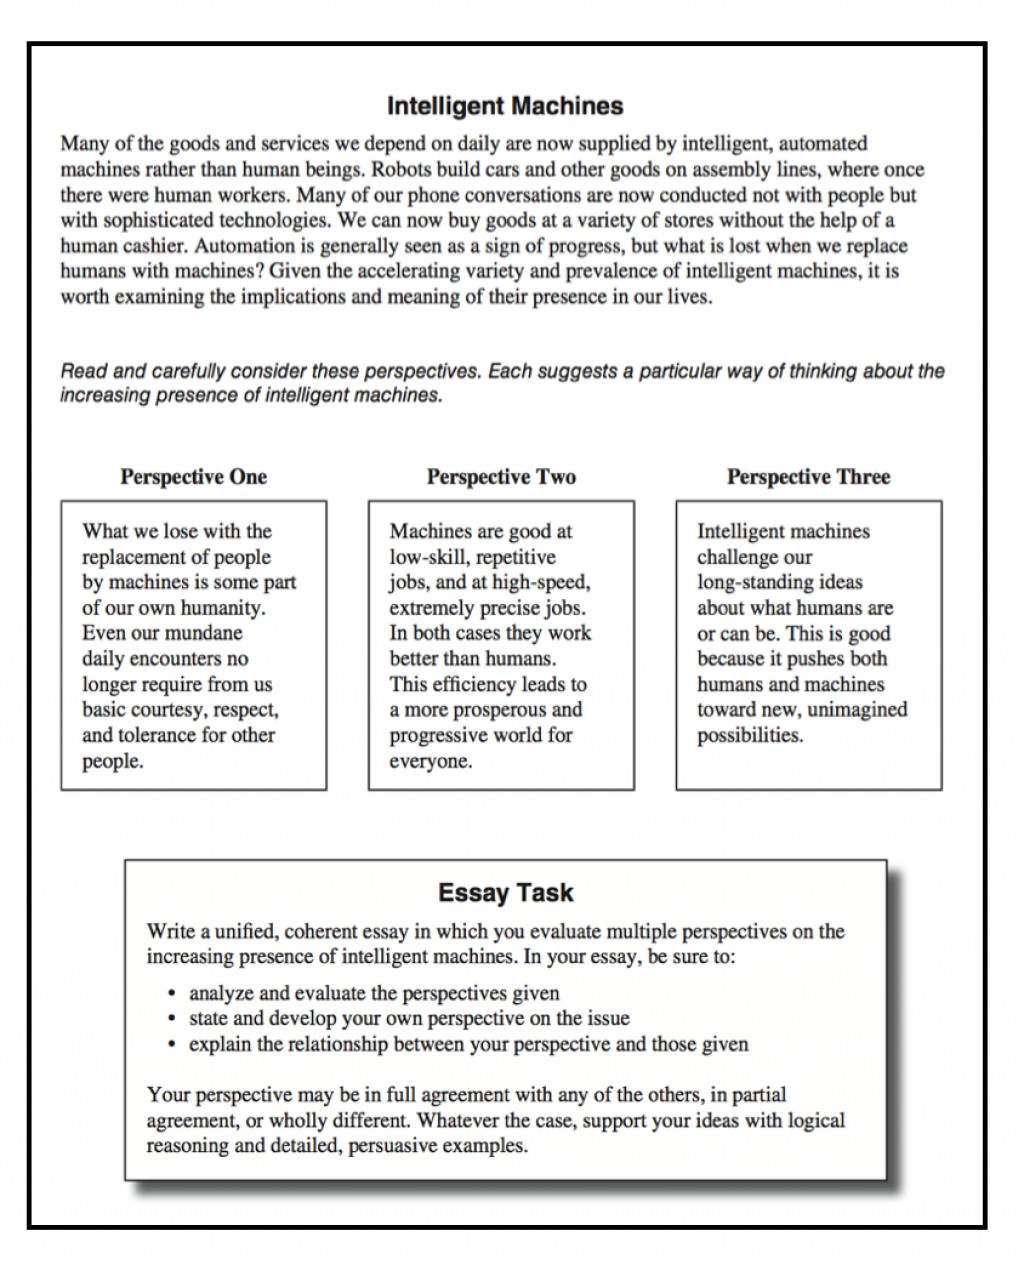 006 Essay Example How To Write An Act Sample Latest Writing Promptsthe World Of Writings The Screen Shot Essays New Topics Dreaded Examples Template Large